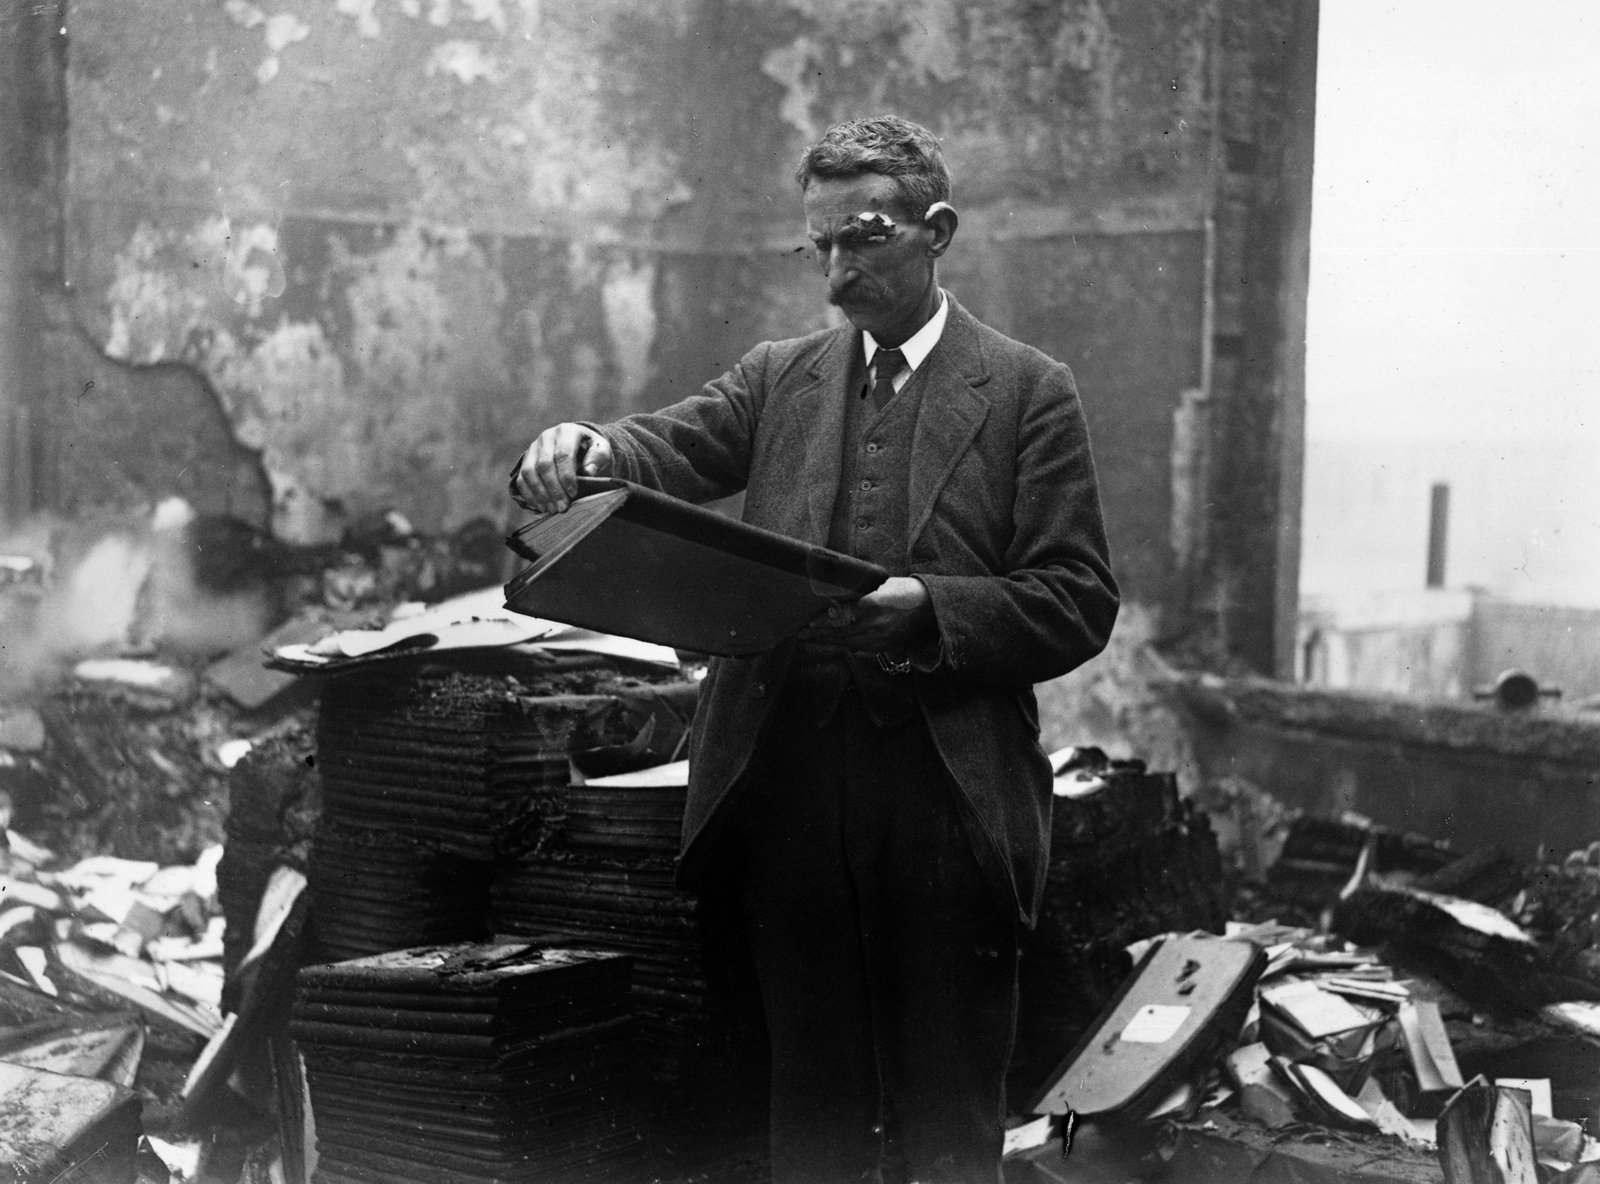 Image - A civil servant retrieves files from the destroyed building. Credit: Getty Images.